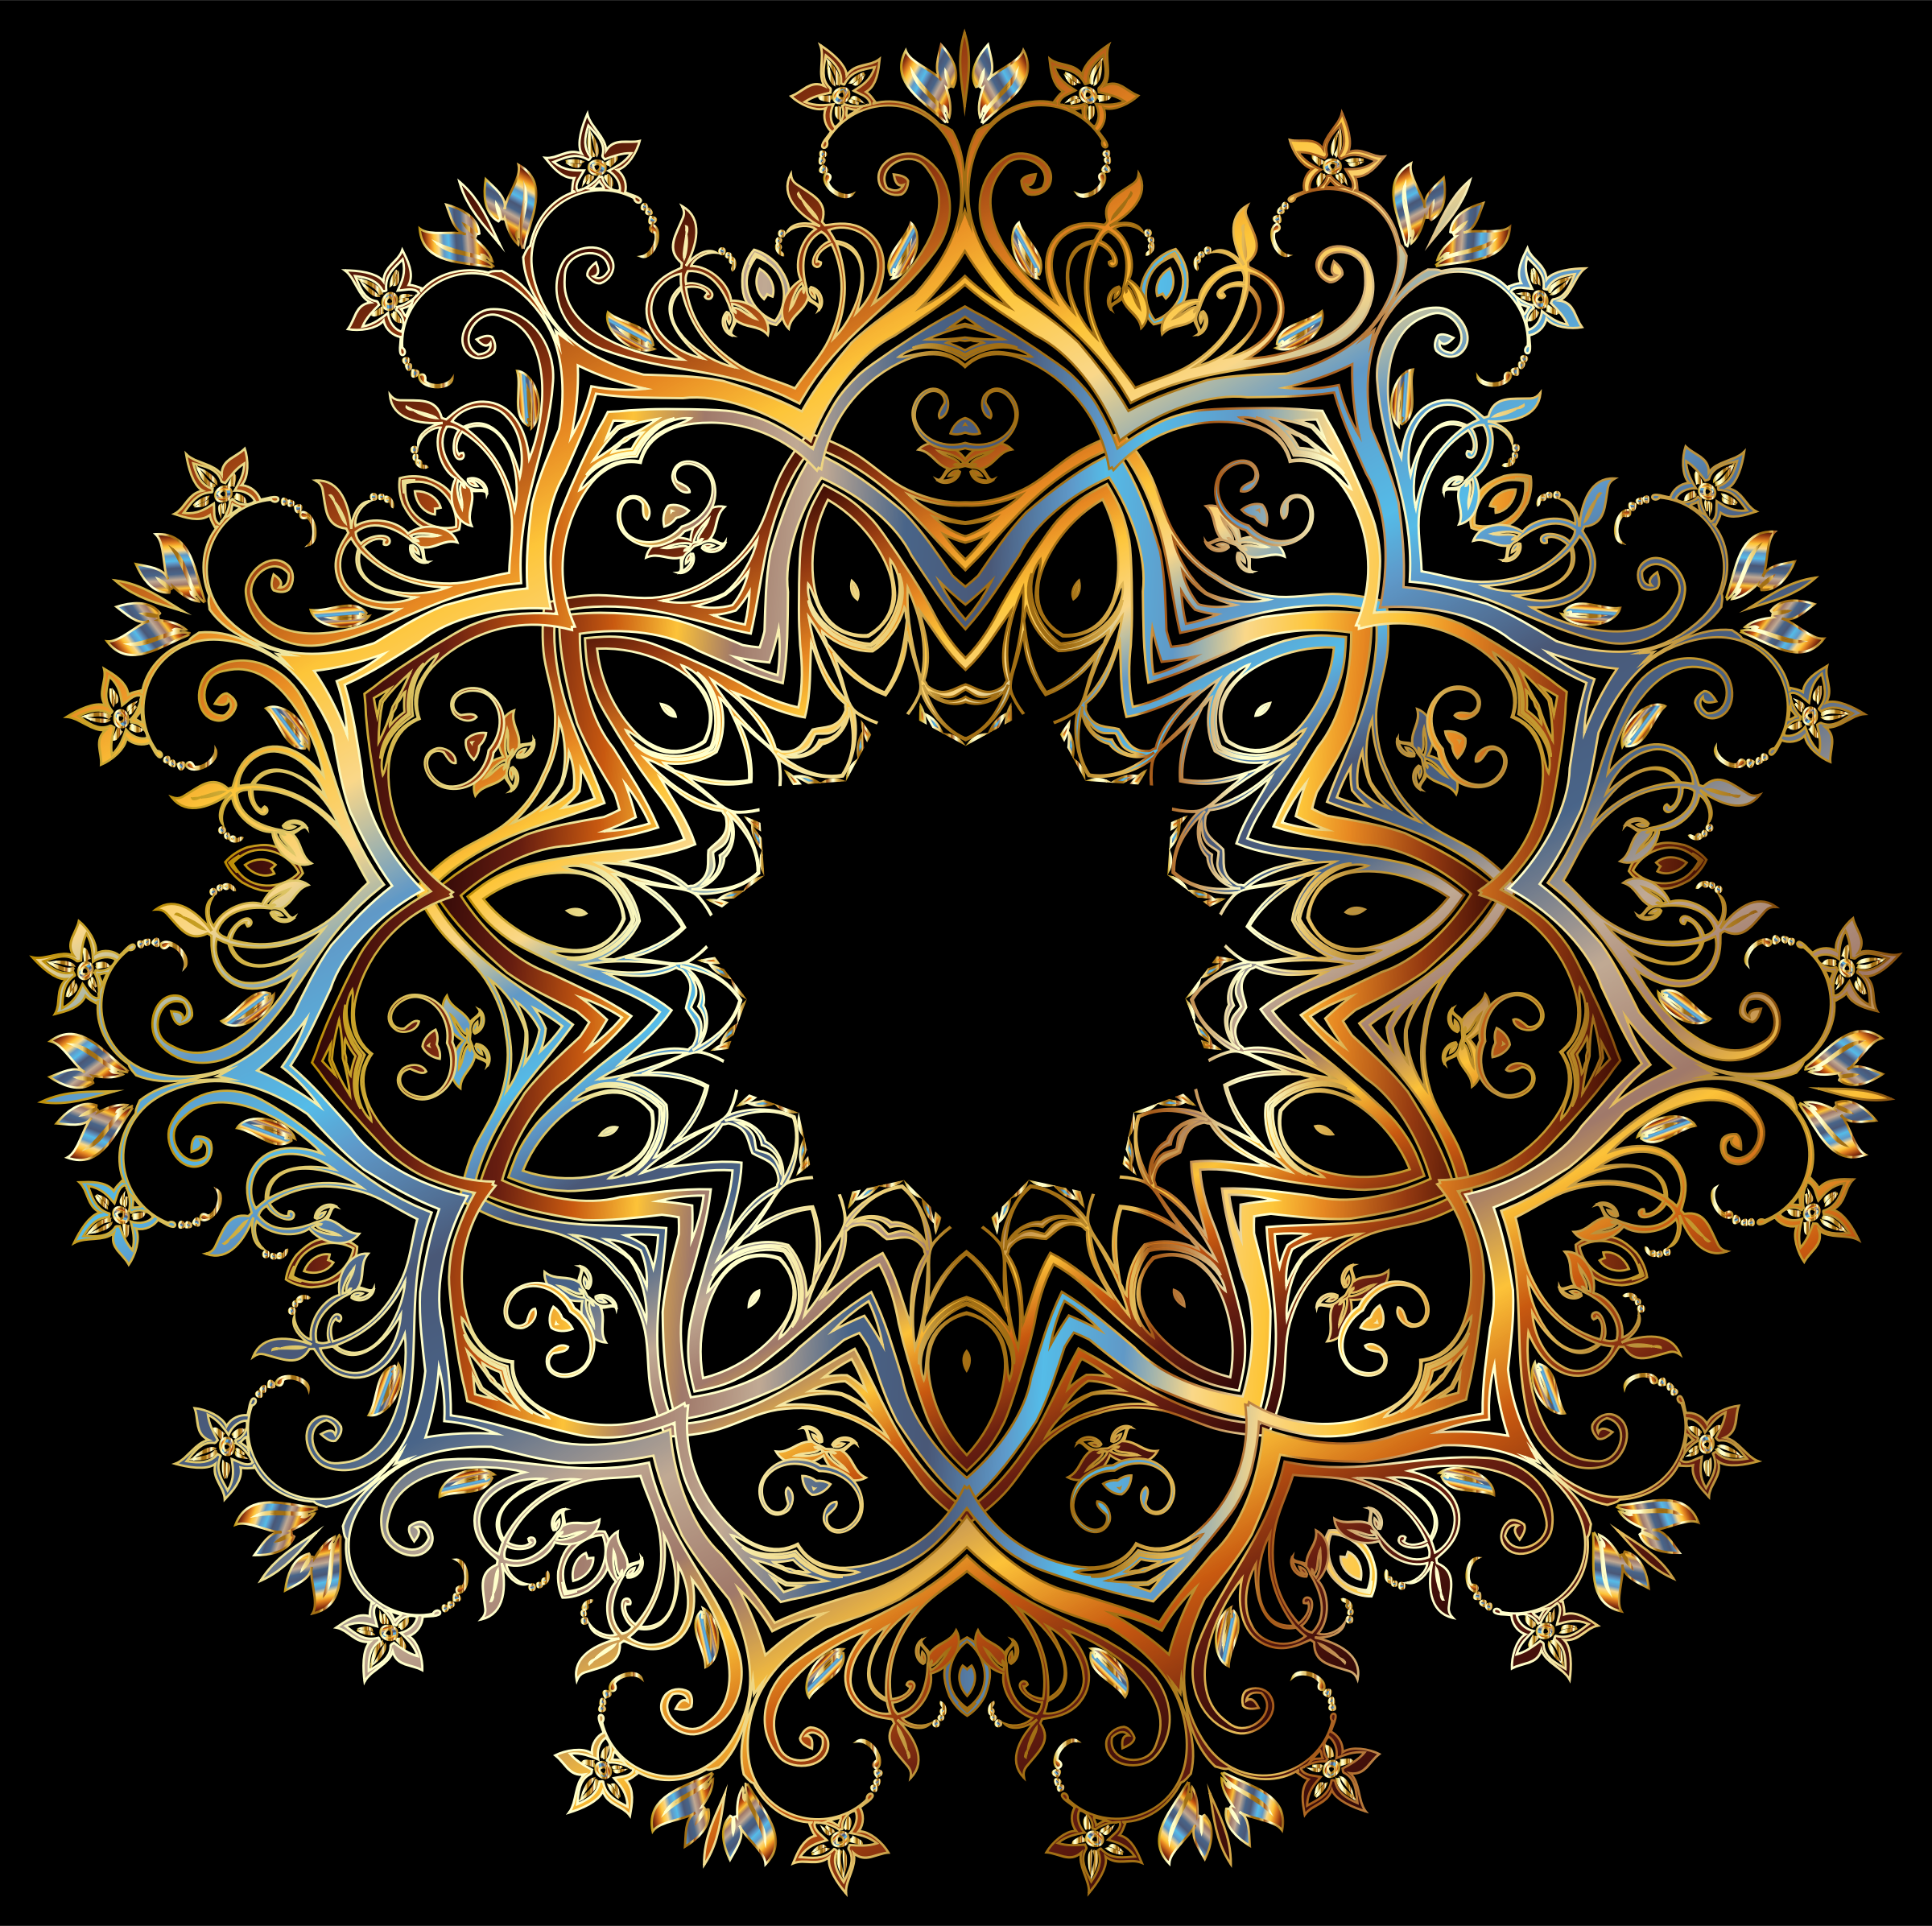 Chromatic Gold Flourish Ornament by GDJ